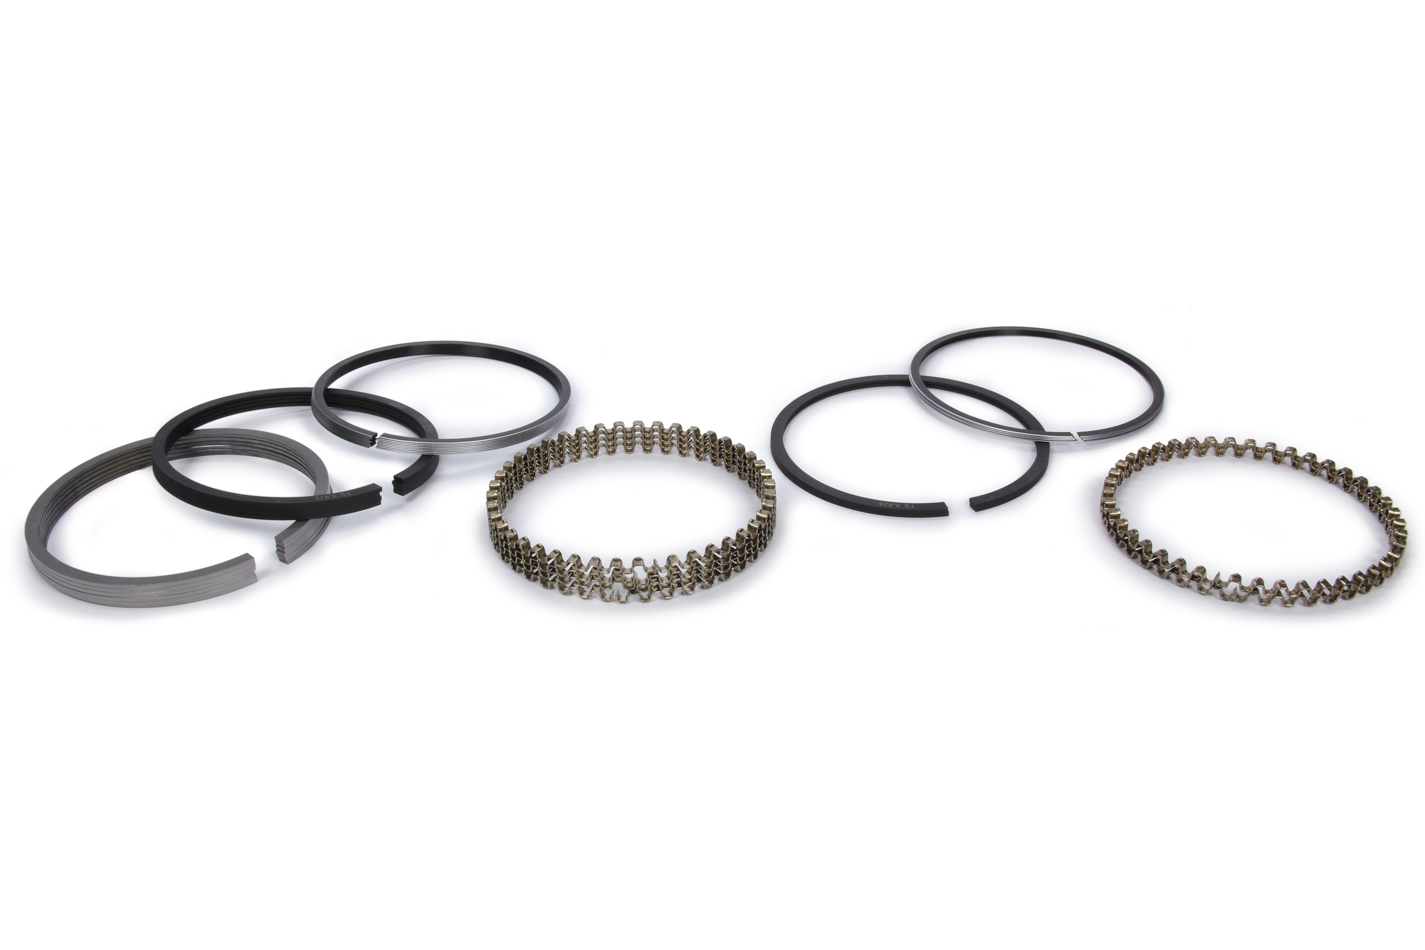 Total Seal CS5899-25 Piston Rings, Classic Race, 3.820 in Bore, File Fit, 1/16 x 1/16 x 3/16 in Thick, Low Tension, Iron, 6 Cylinder, Kit